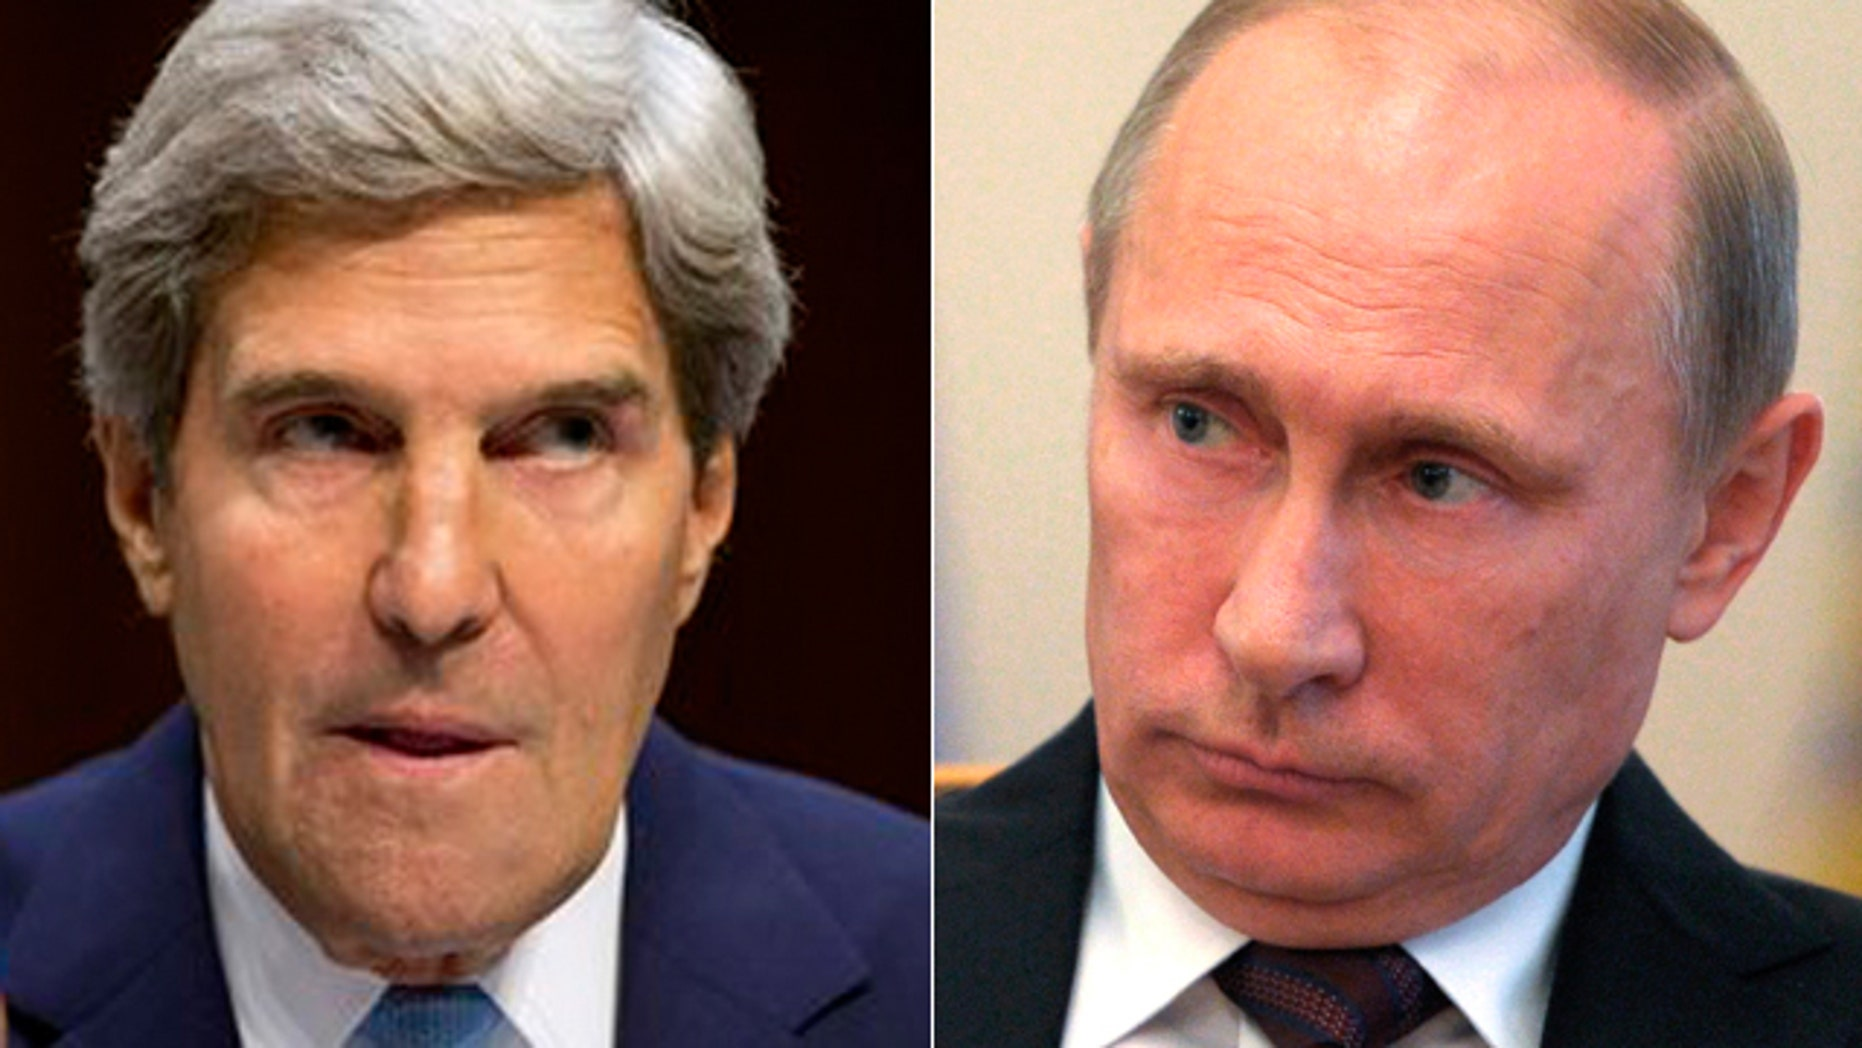 Sec. of State Kerry, left, and Russian President Putin.